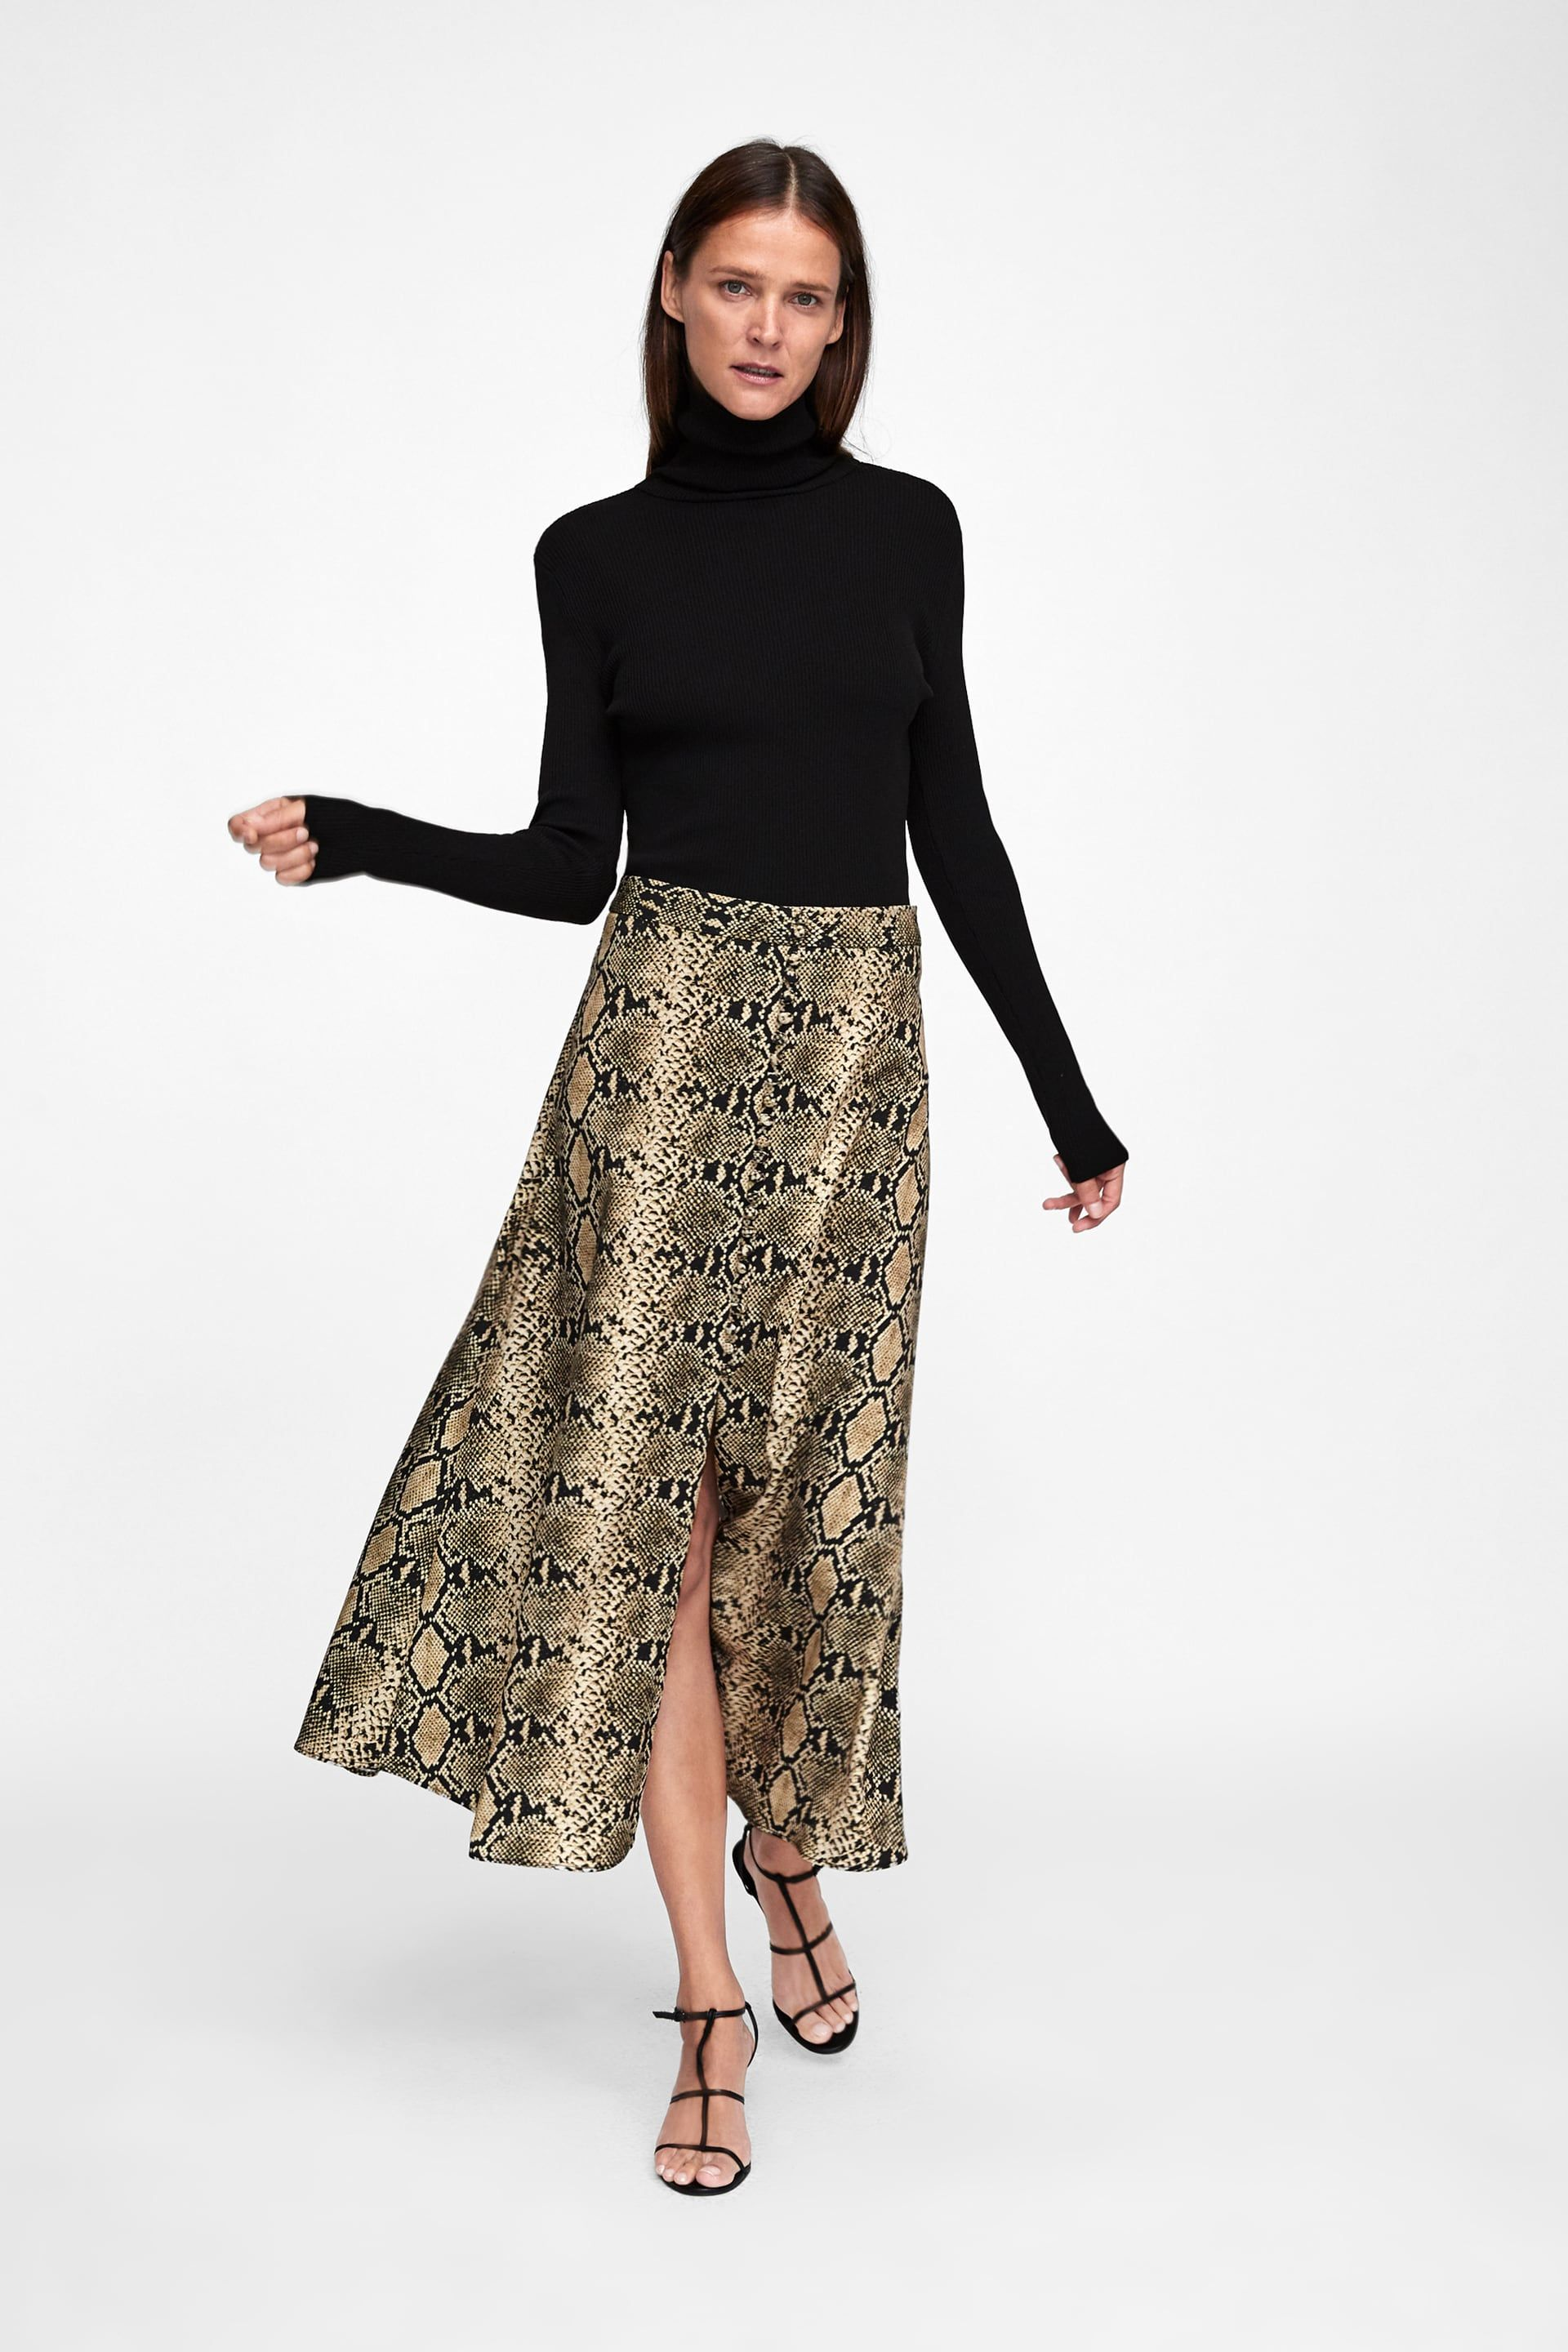 58aa687508 FALDA ESTAMPADO SERPIENTE in 2019 | Looks I Love | Skirt fashion ...